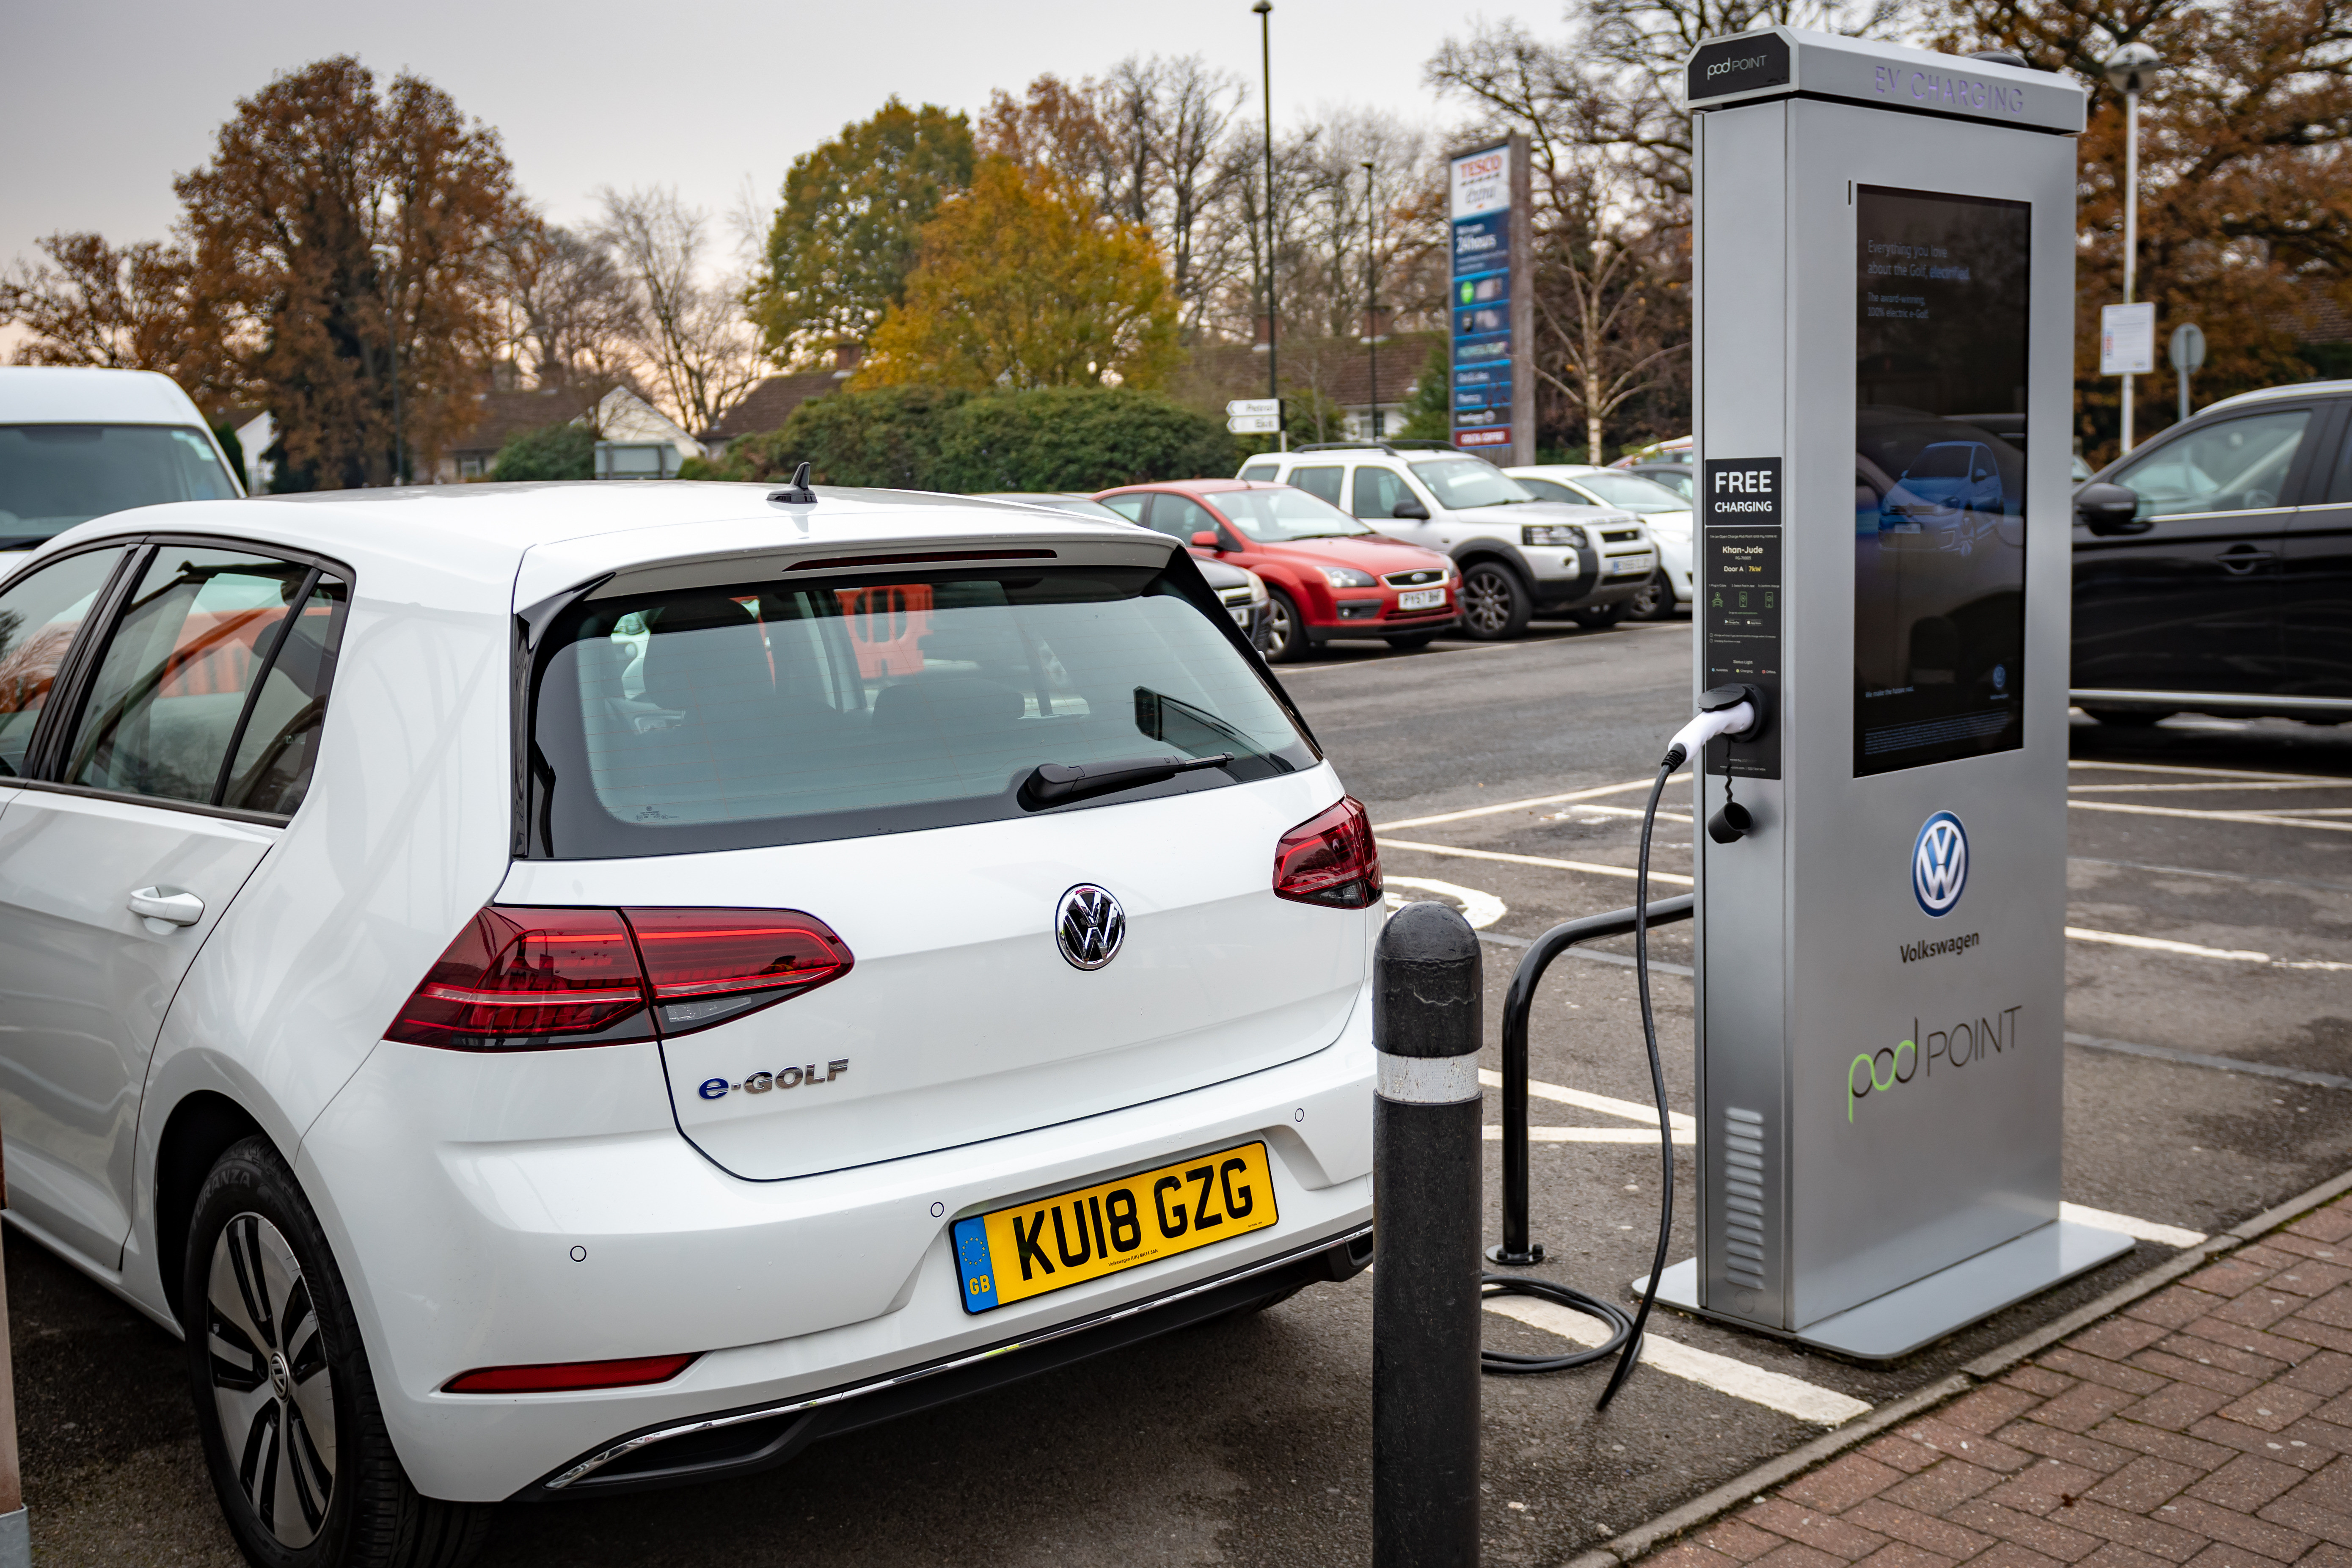 Volkswagen Golf charging up at Tesco Pod Point